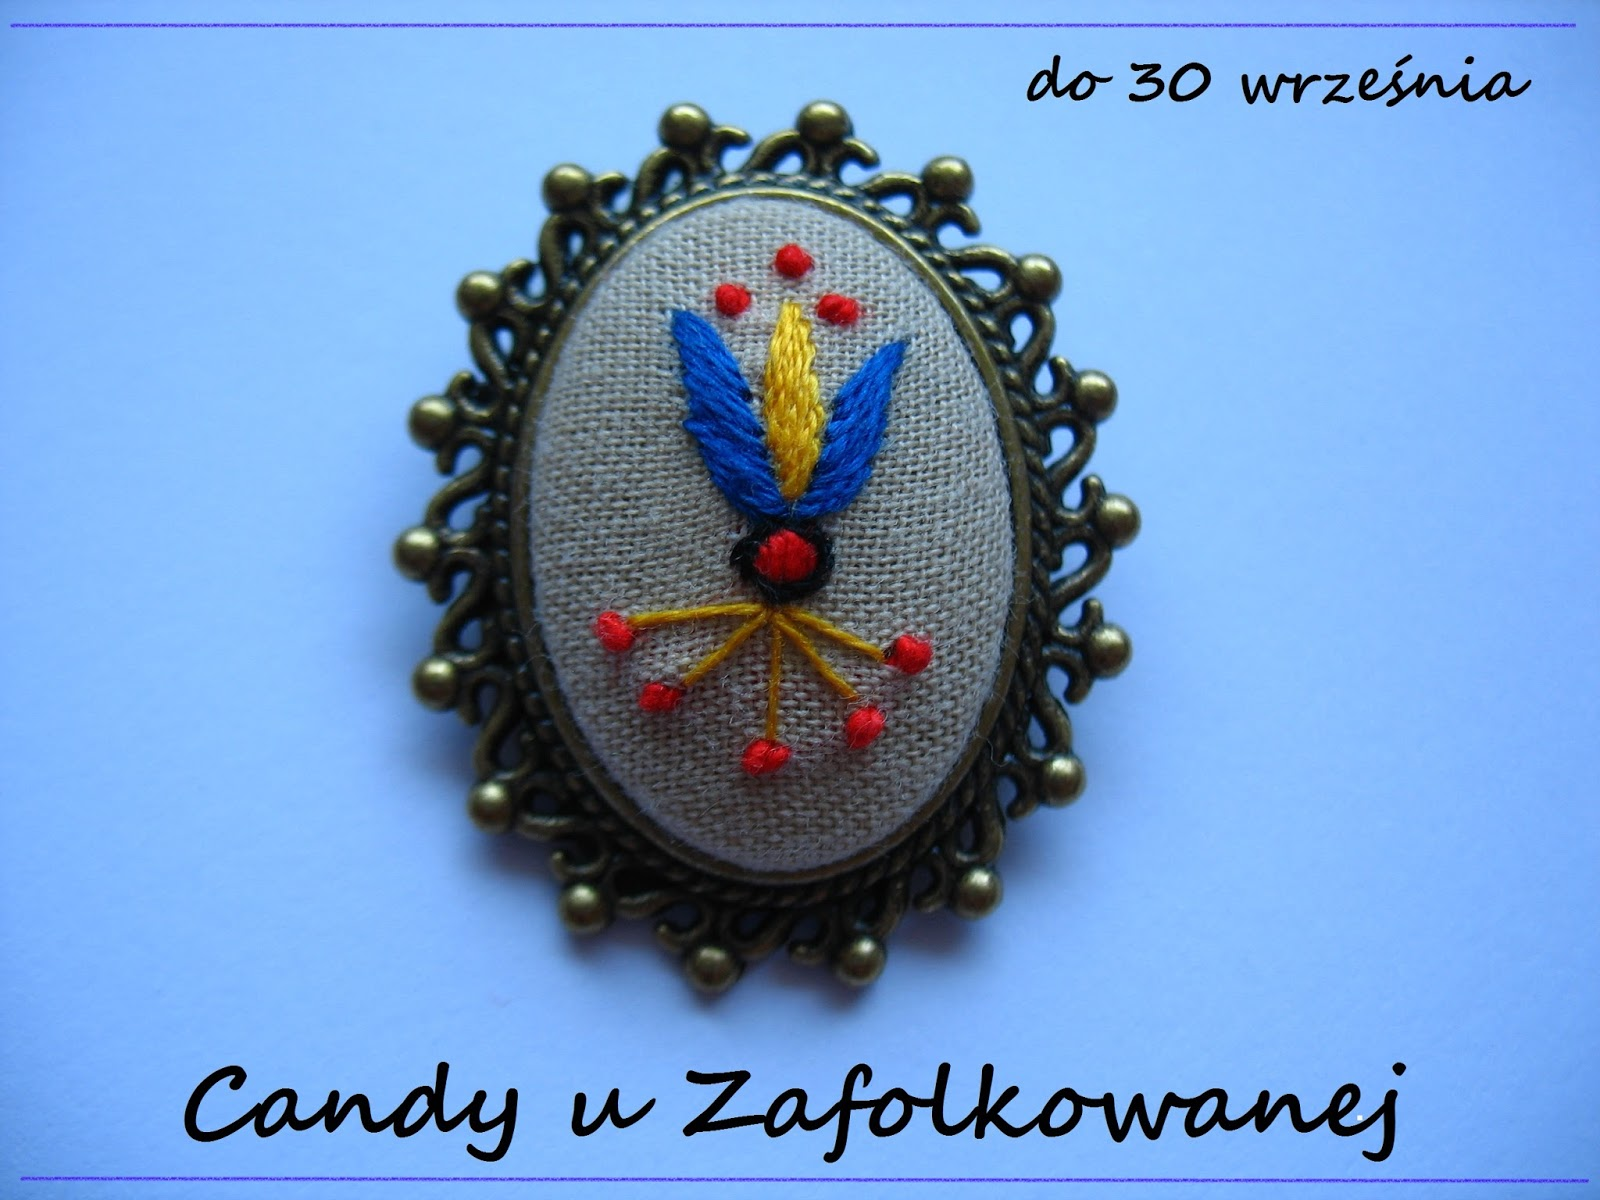 Candy u Zafolkowanej do 30 września